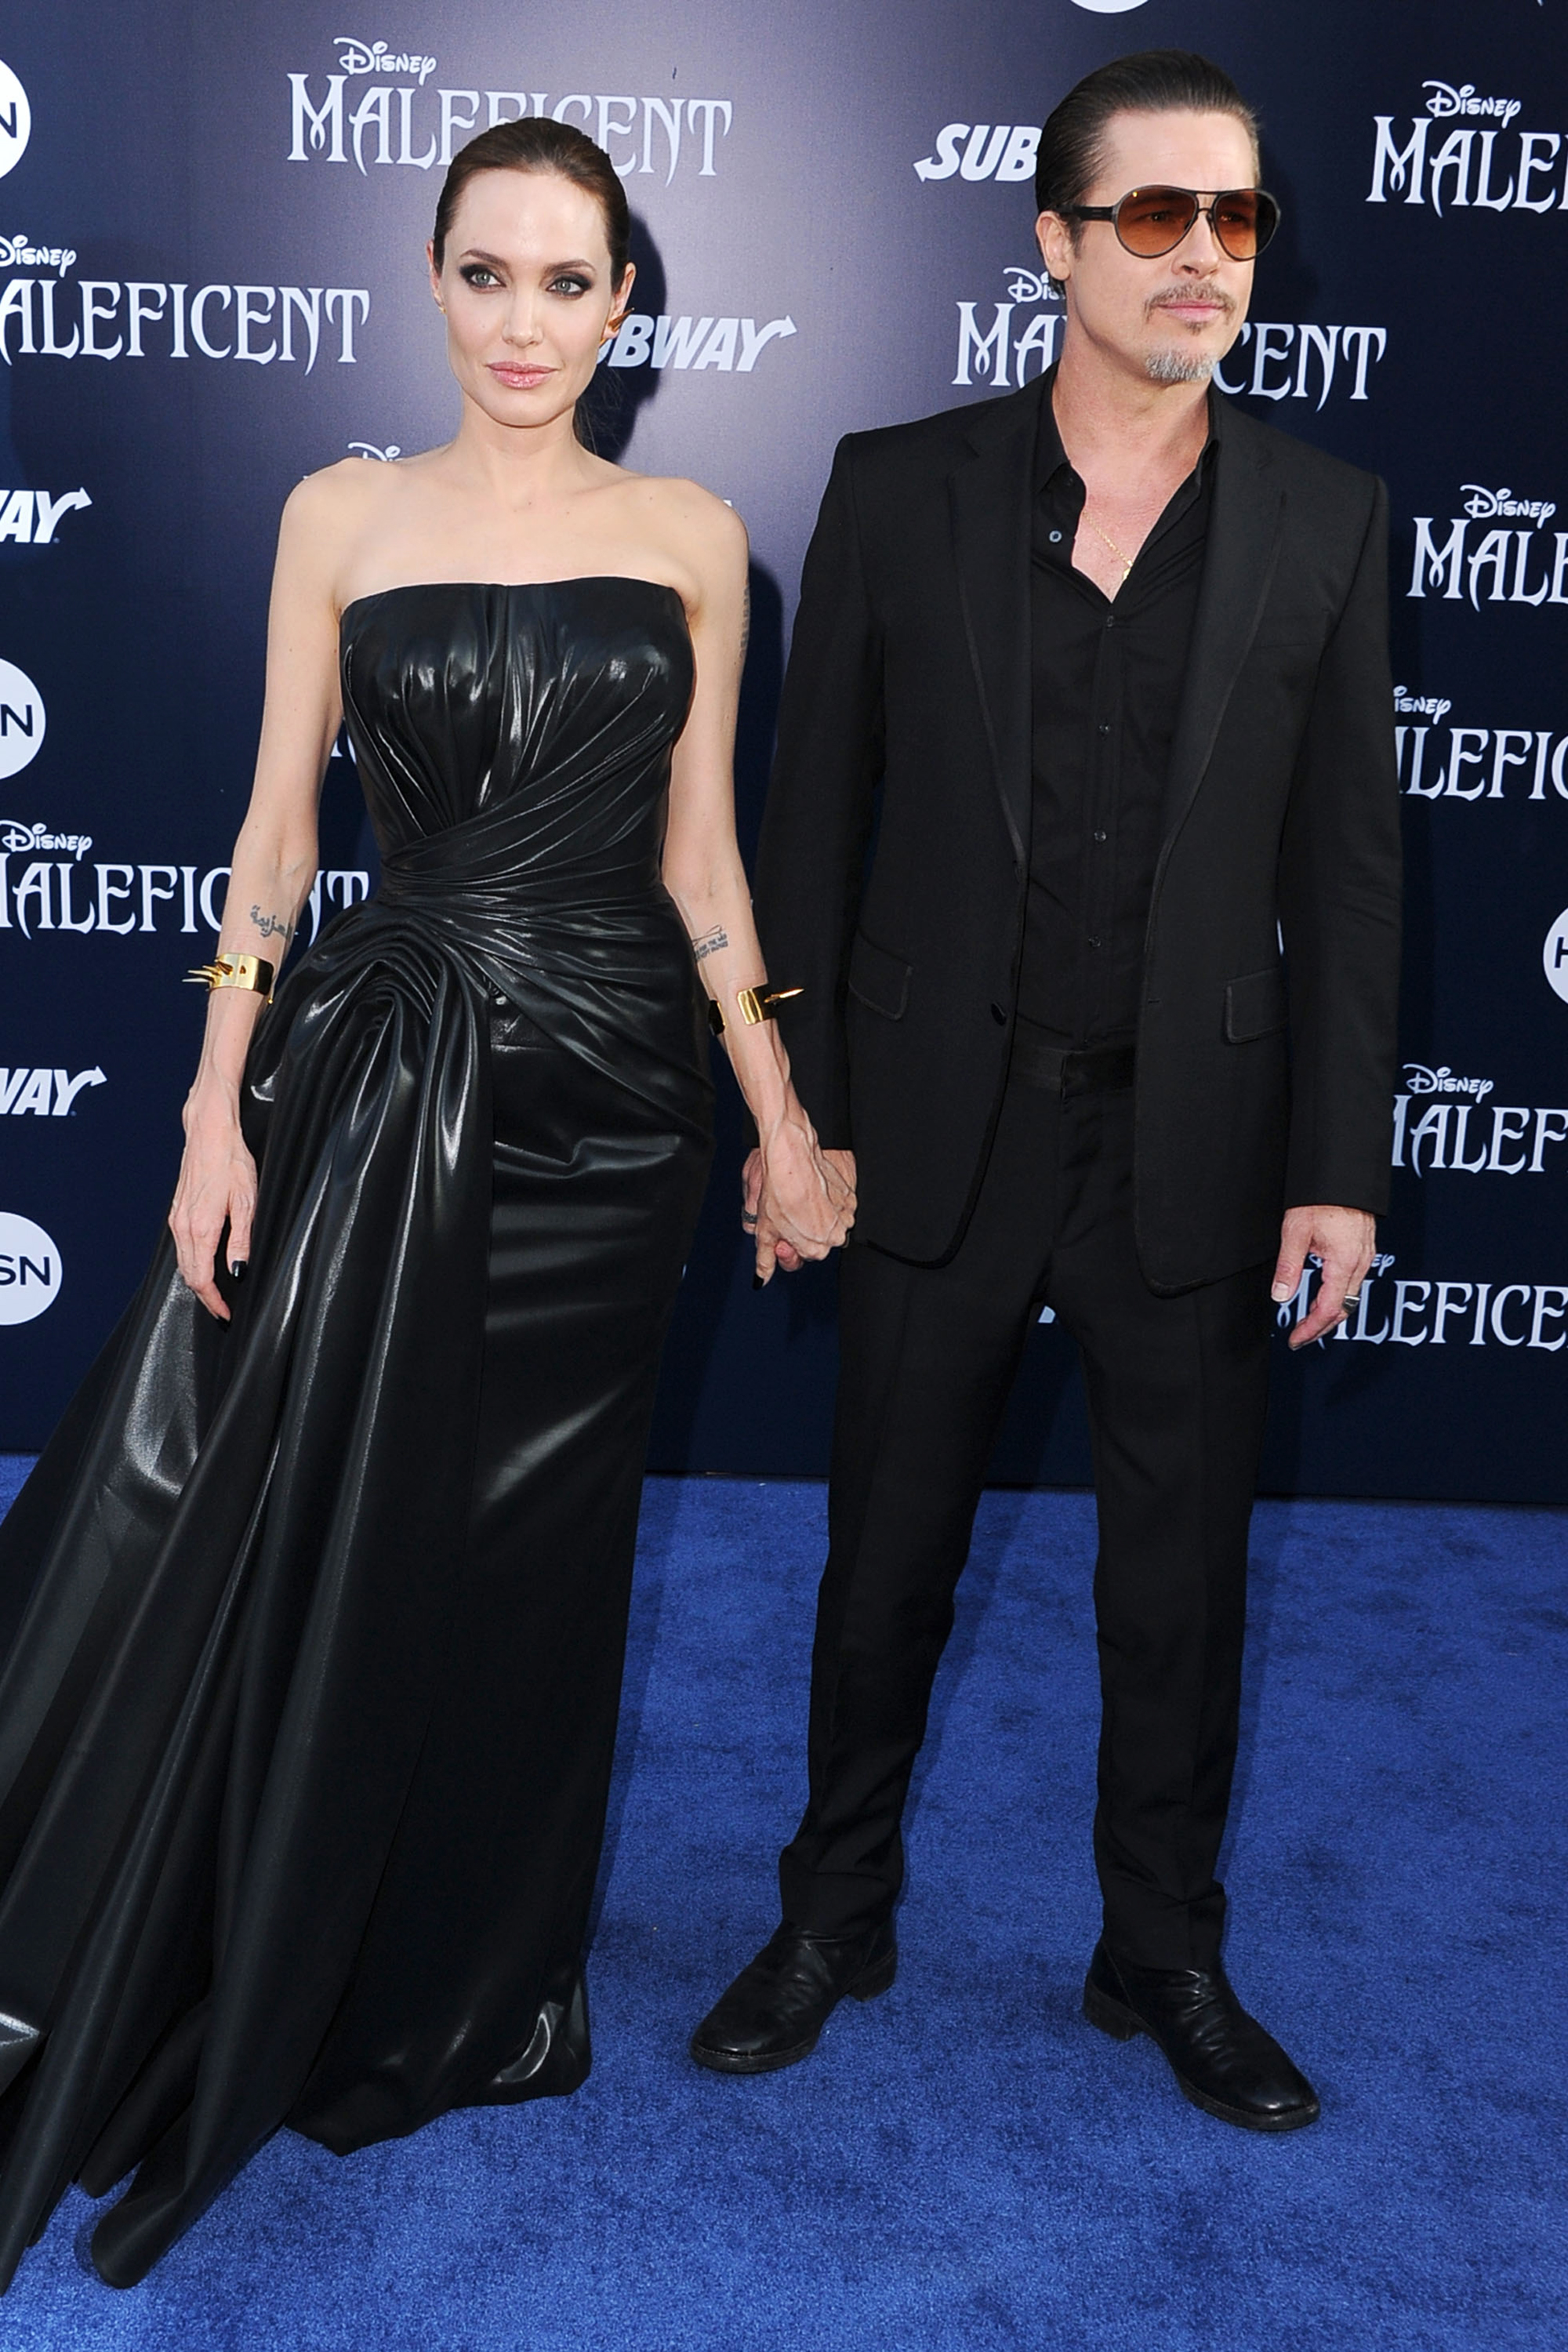 Angelina Jolie and Brad Pitt arrive premiere of Maleficent on May 28, 2014 in Hollywood, Calif.